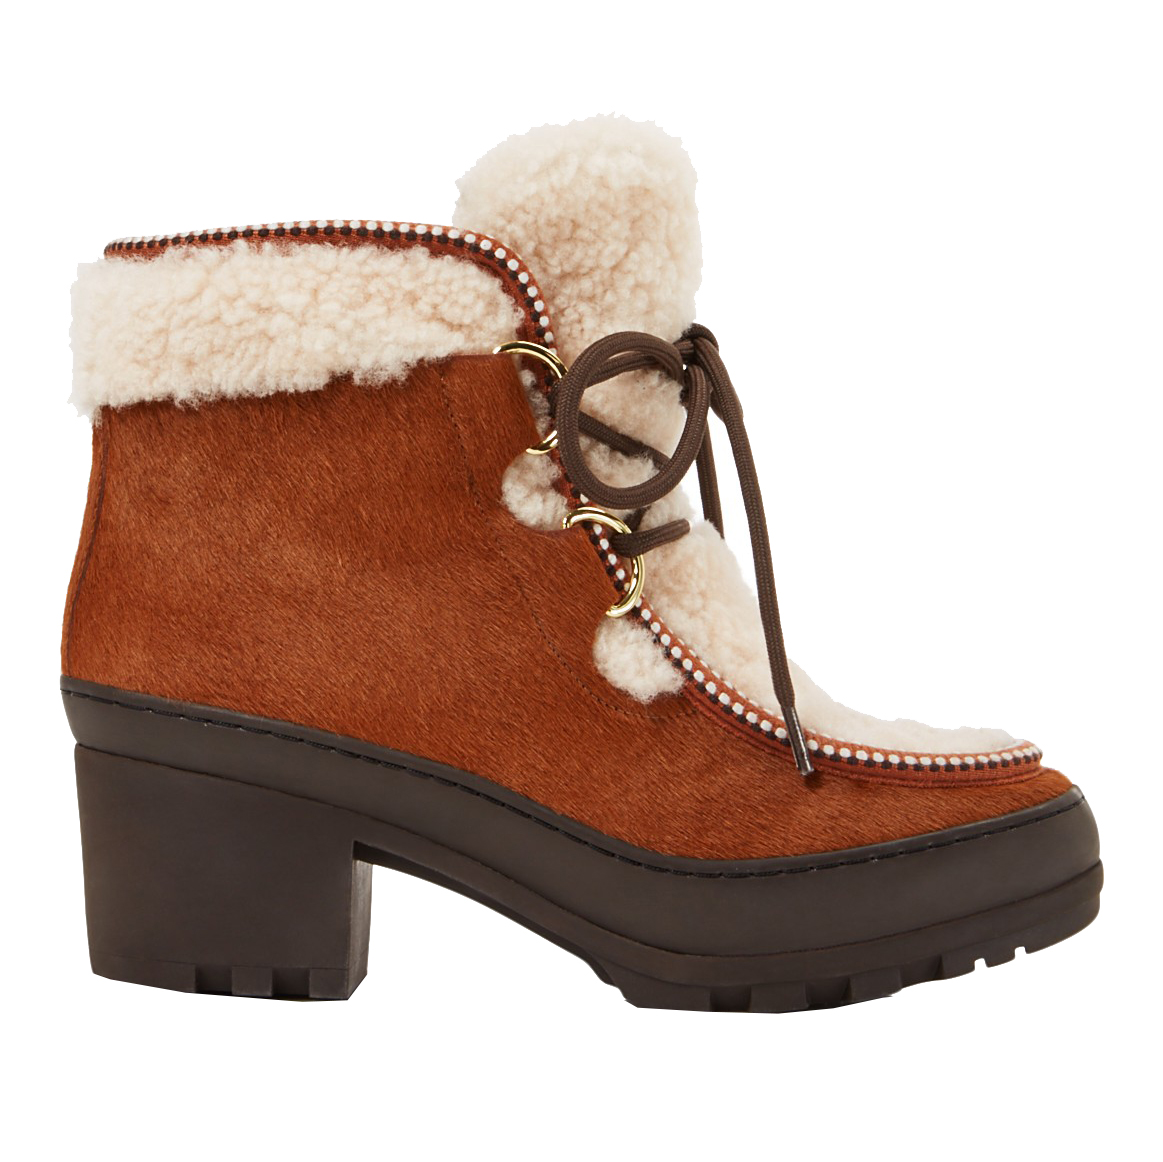 <p>Tory Burch Boots</p>